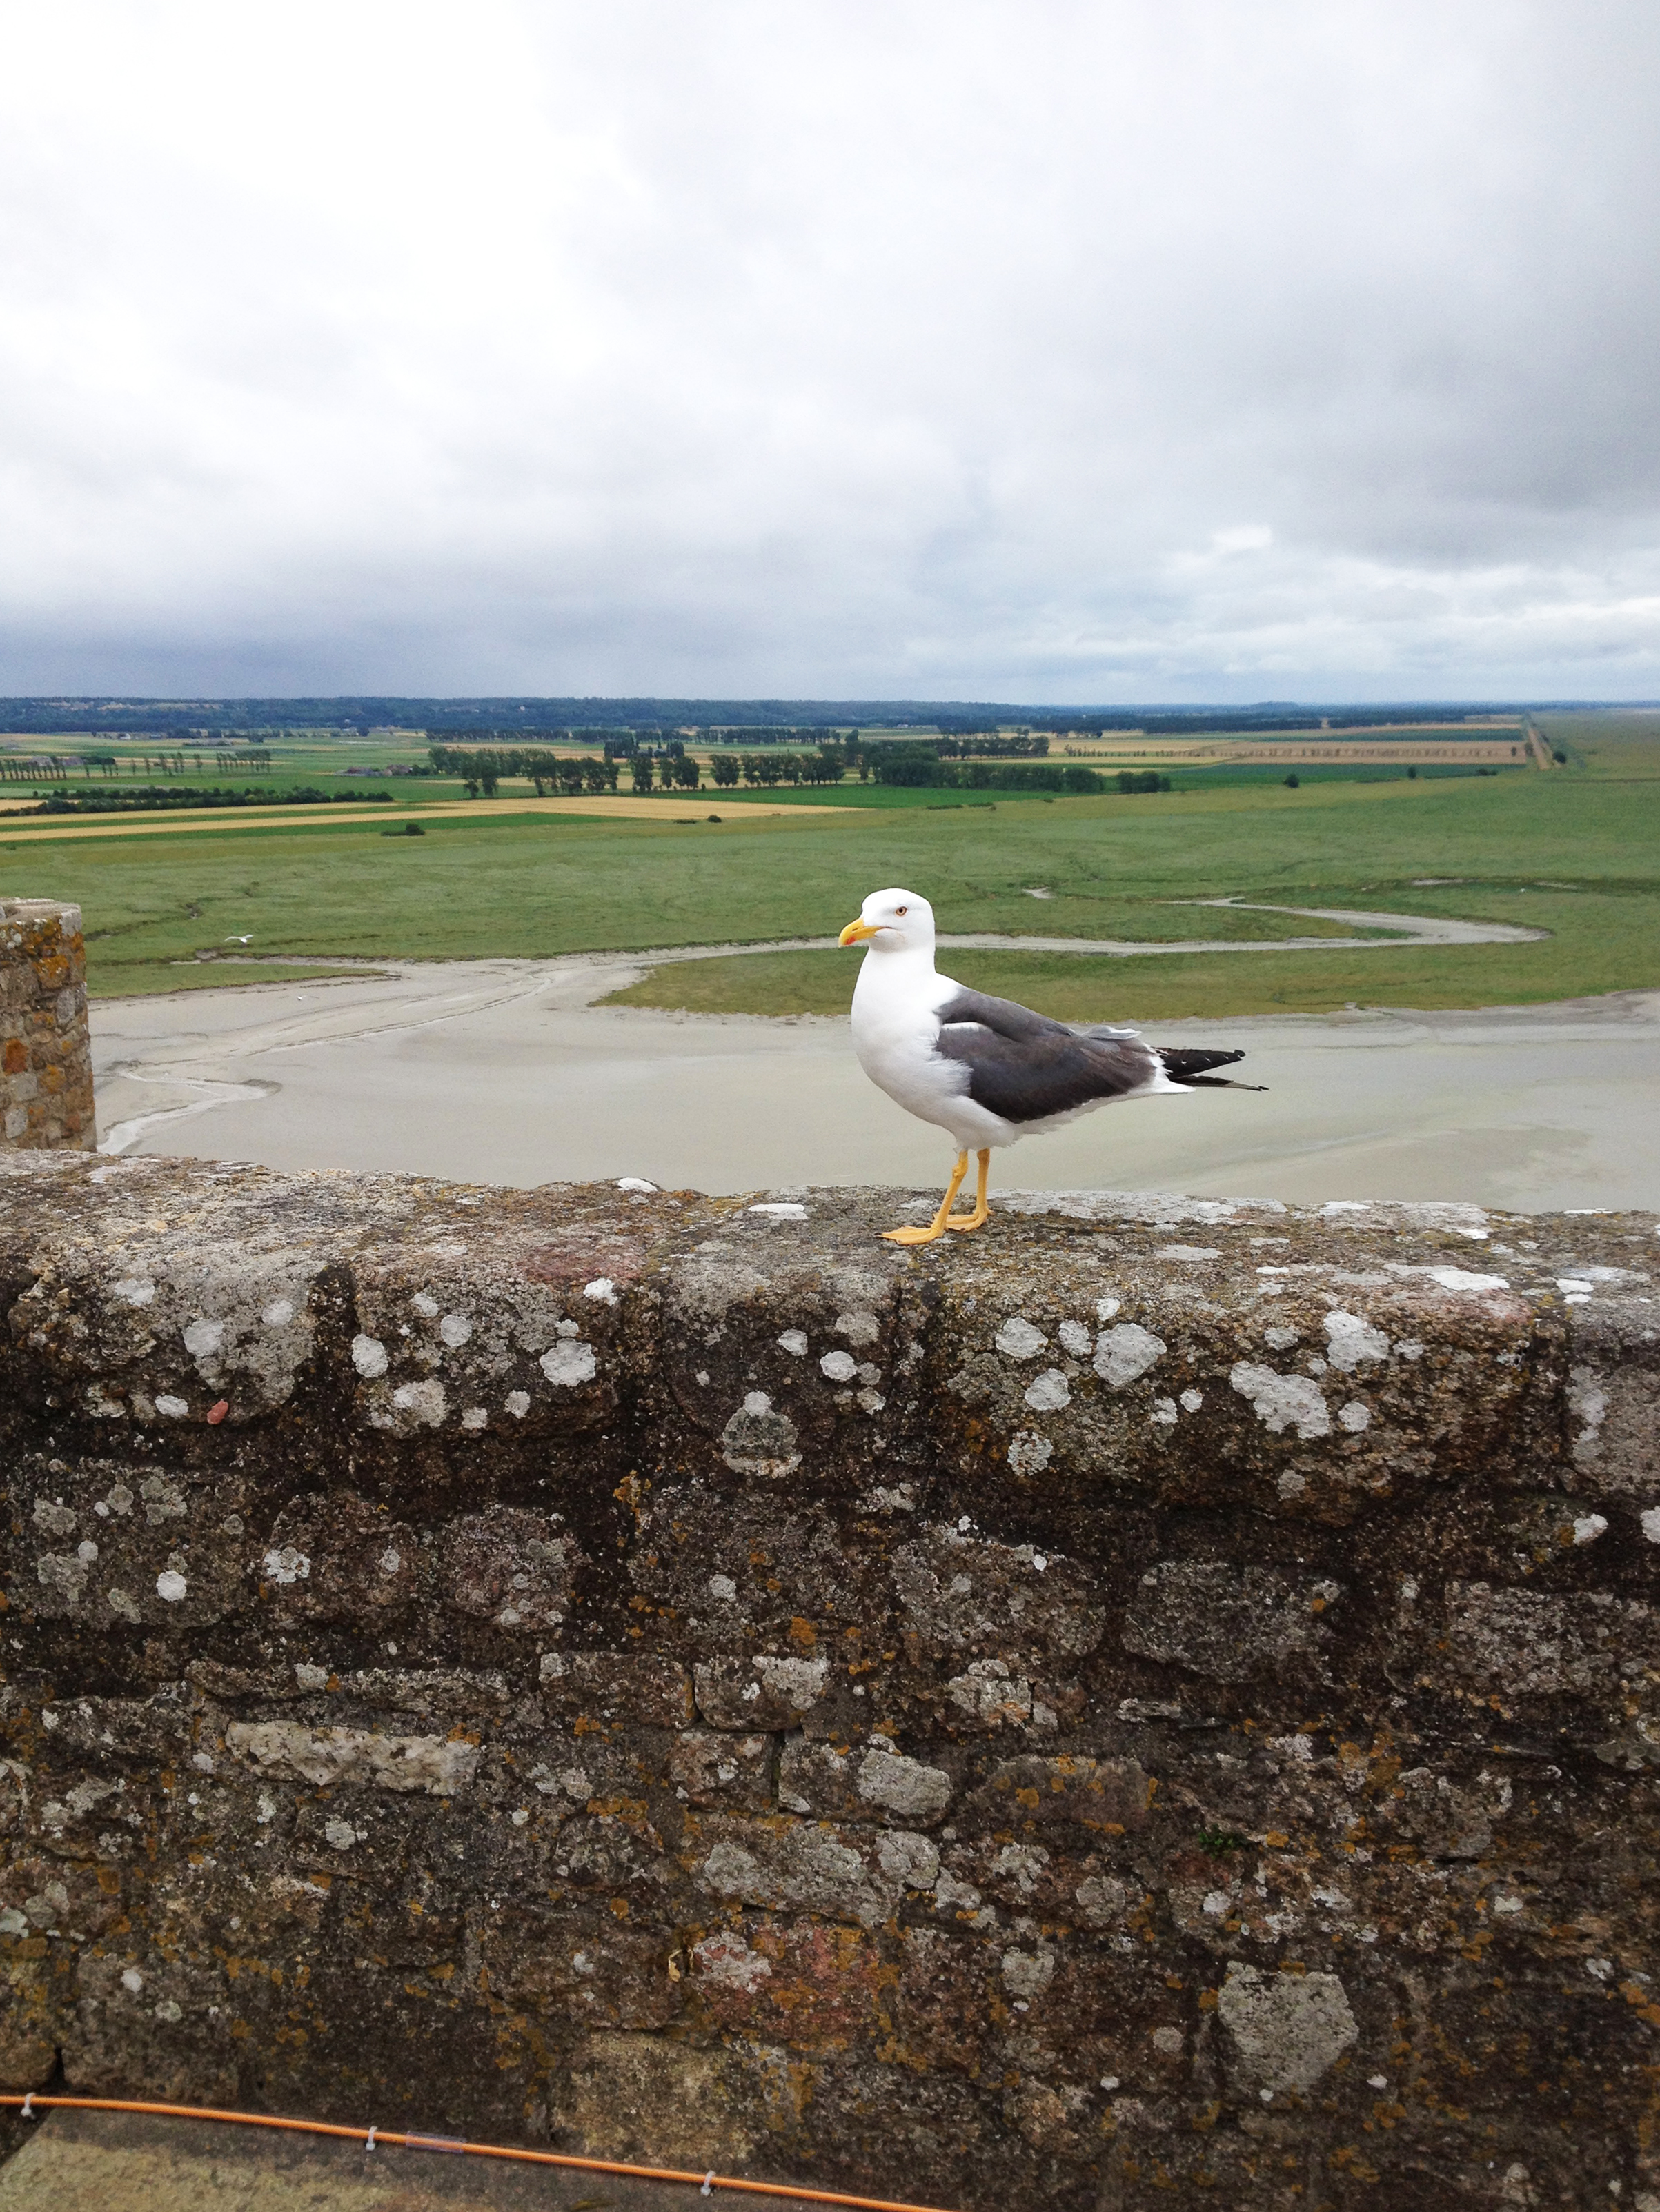 We weren't allowed to take many photos inside of the abbey of Mont Saint-Michel, but back outside I snapped a pic of a new friend we made.